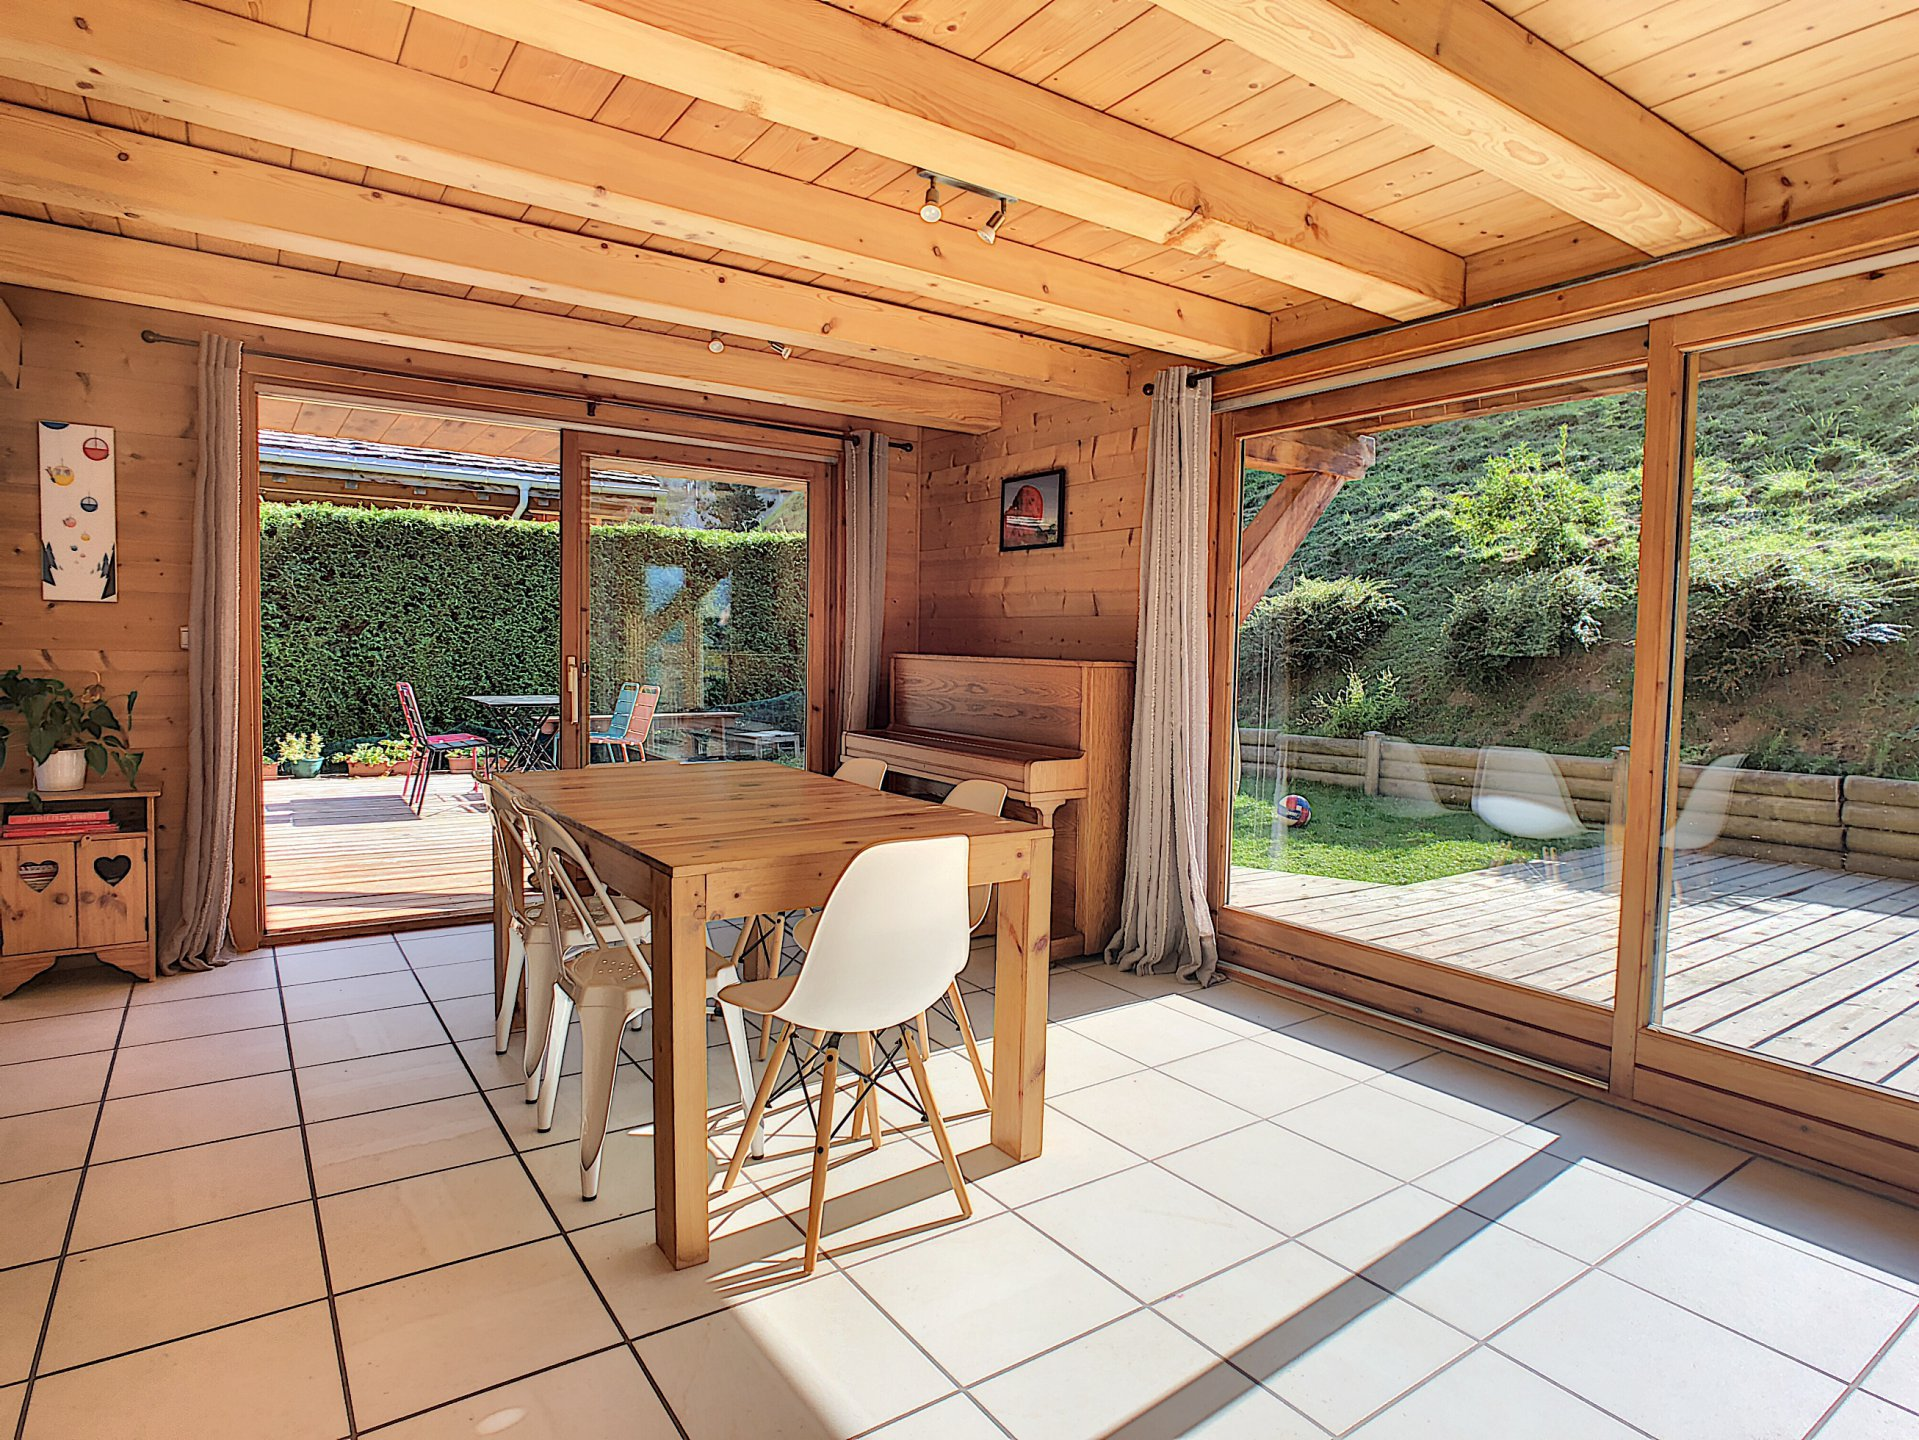 Dining area with double patio doors